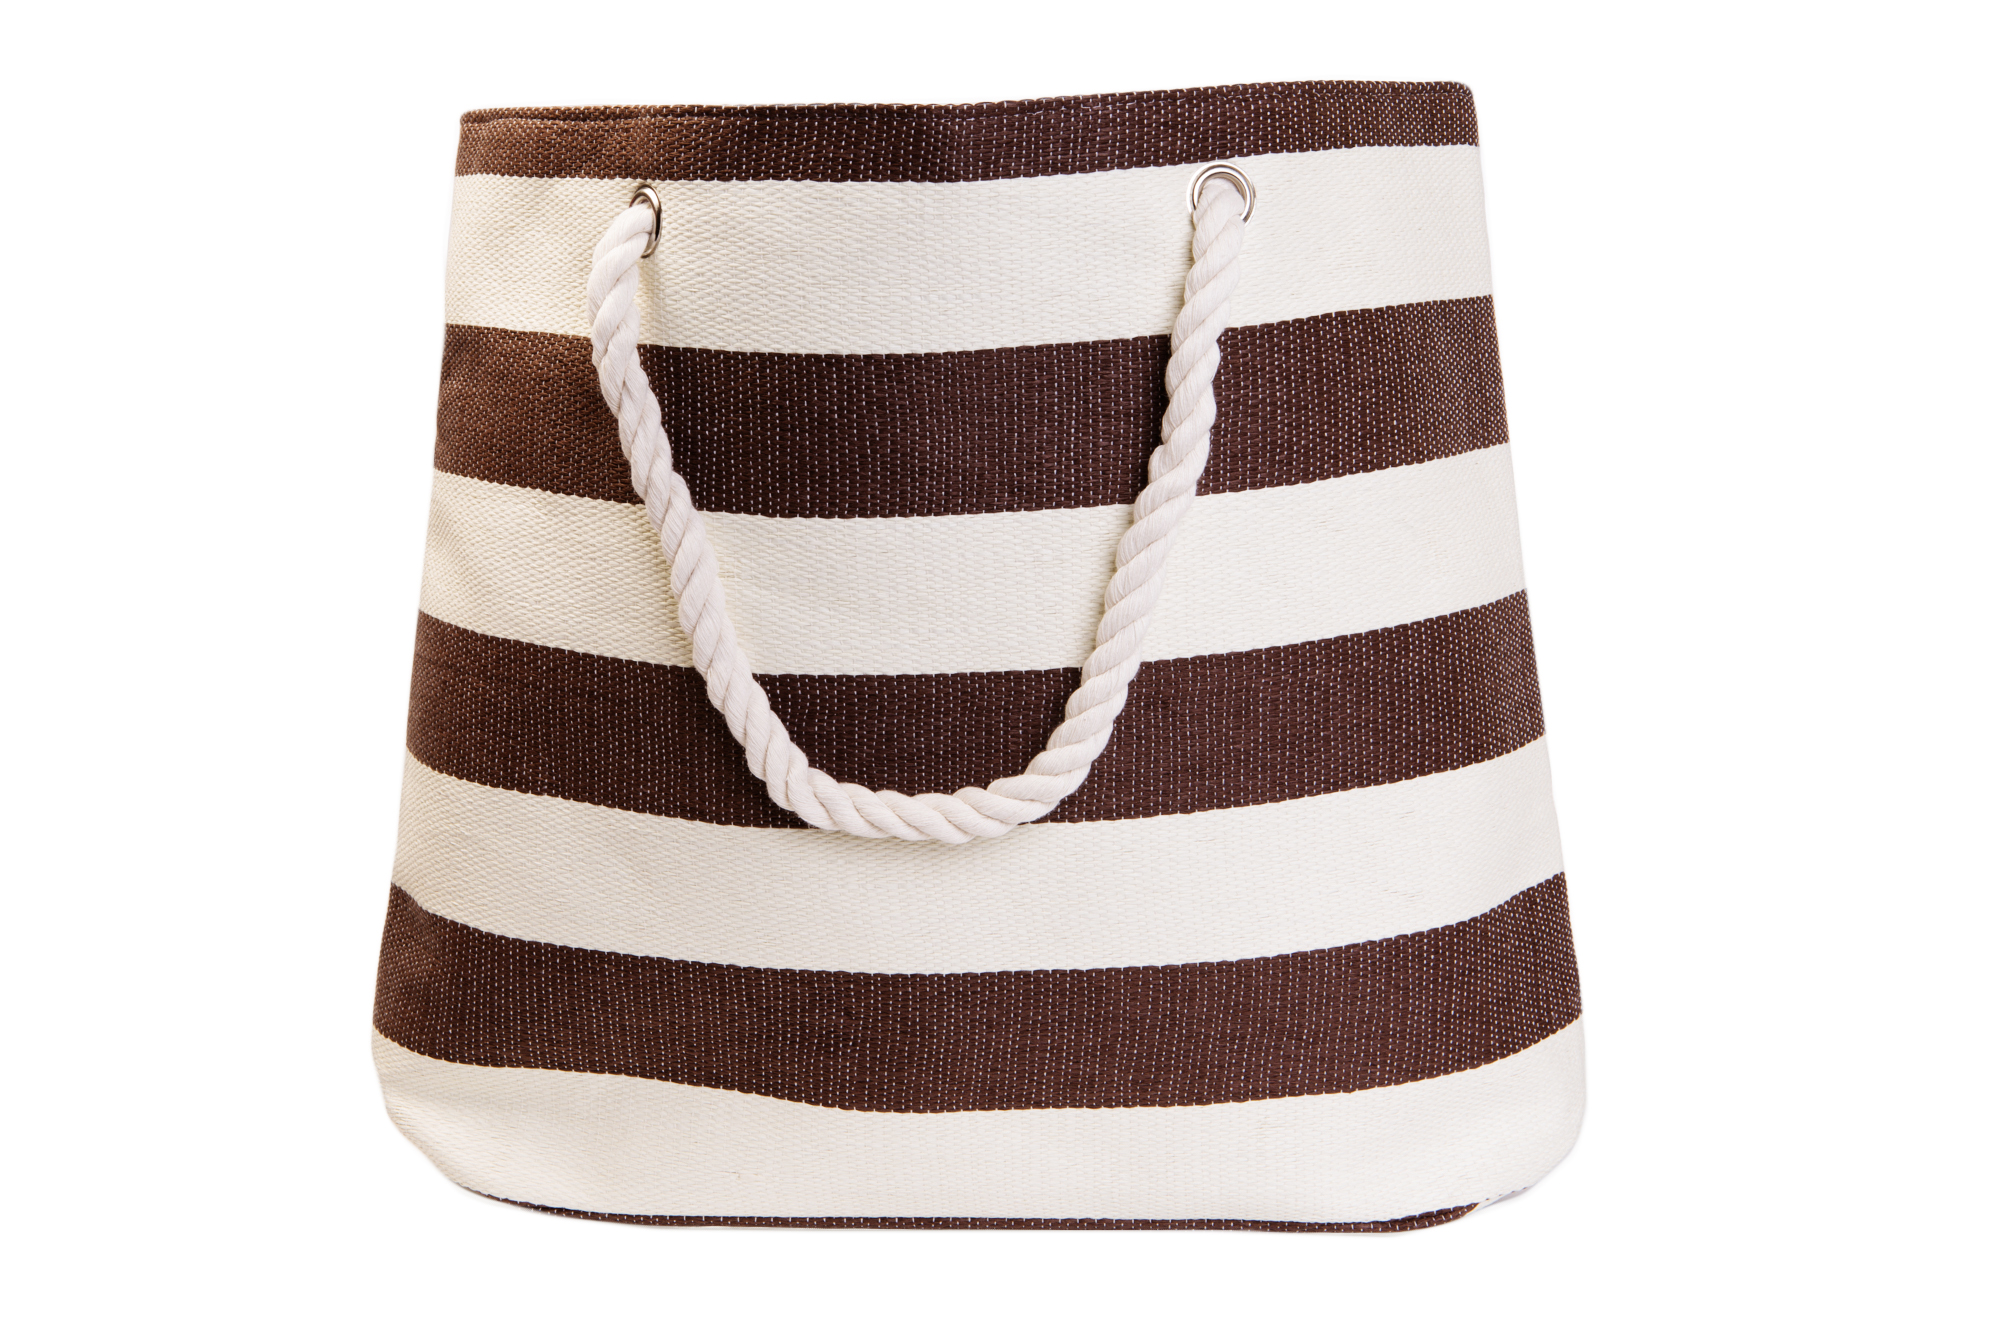 Straw Beach Bags W/ Pocket - Mocha Stripes